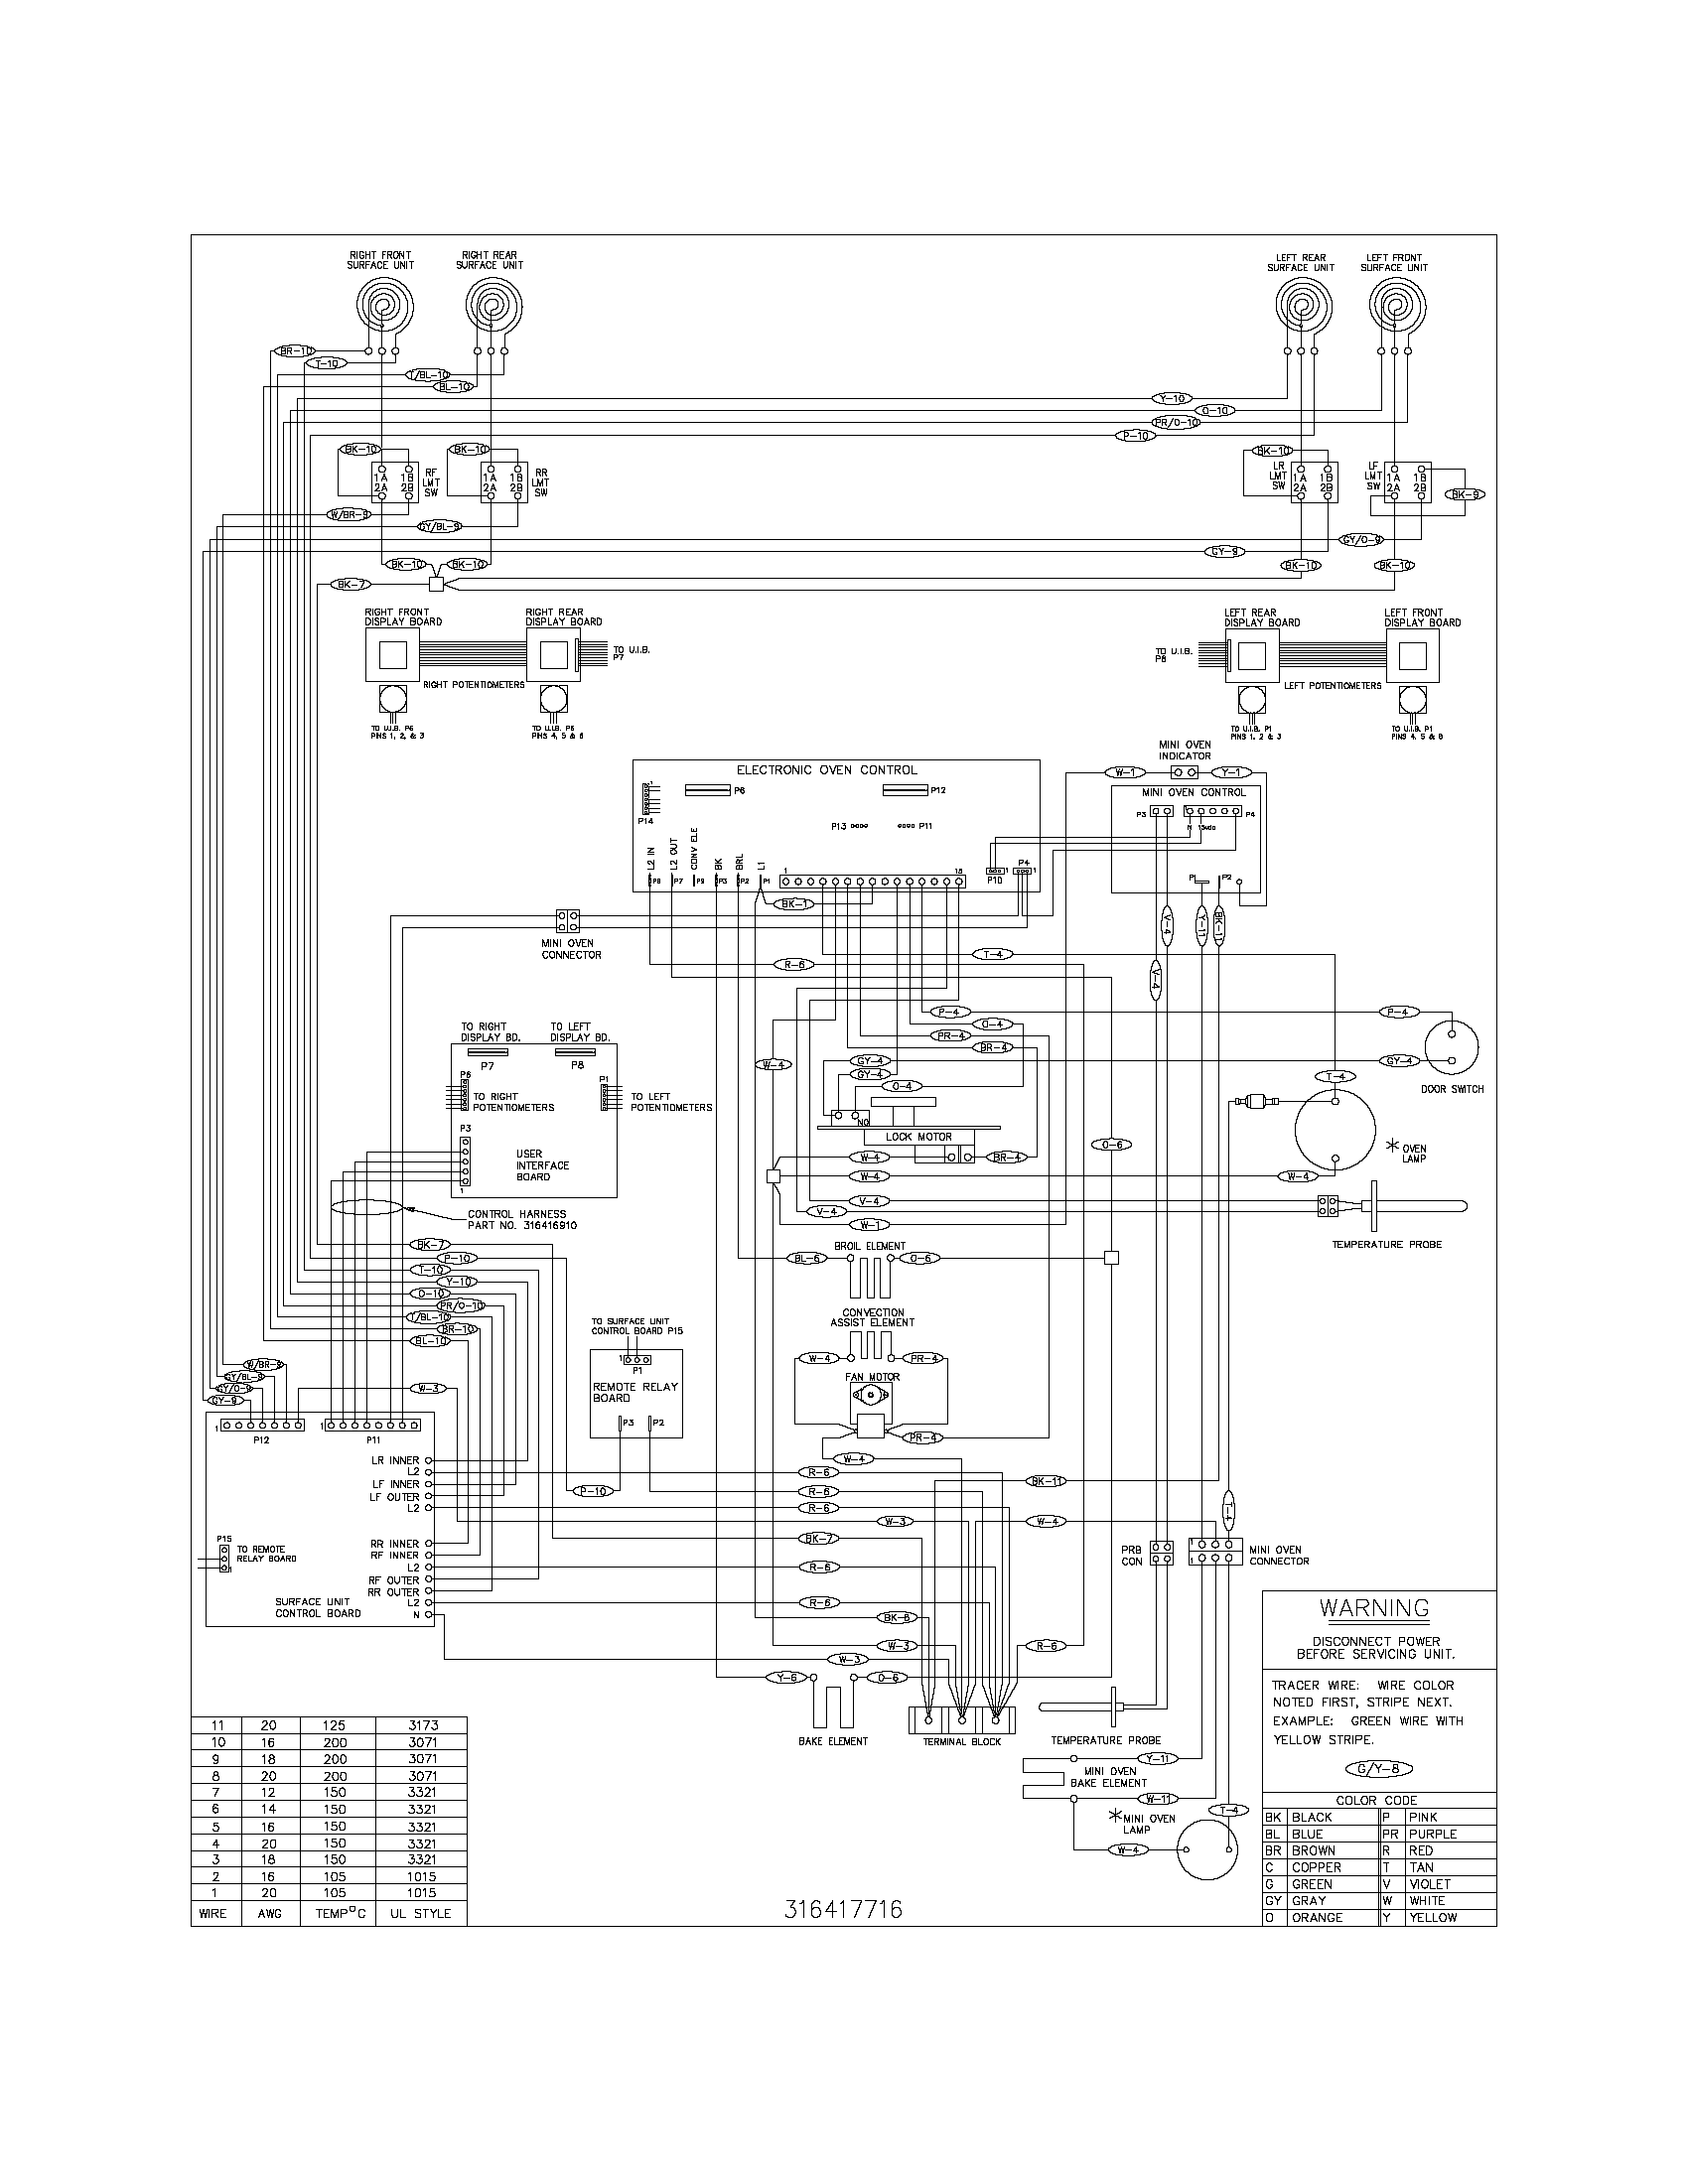 wiring diagram for a frigidaire stove